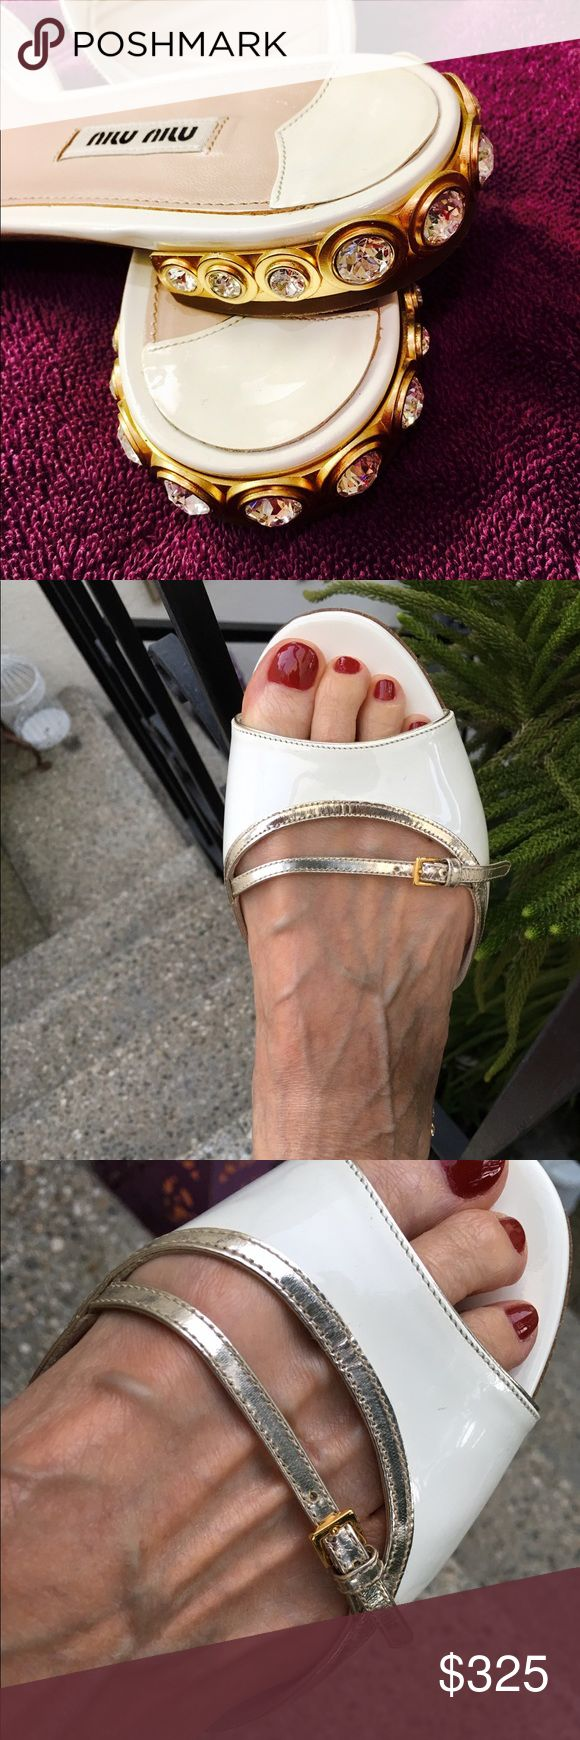 Miu Miu white patent leather jewel heel sandal 0.8 inch crystal embellished heels. White patent leather with silver leather adjustable strap. Topstich collar. Almond toe. Leather outsole. Made in Italy. Excellent condition. Miu Miu Shoes Sandals